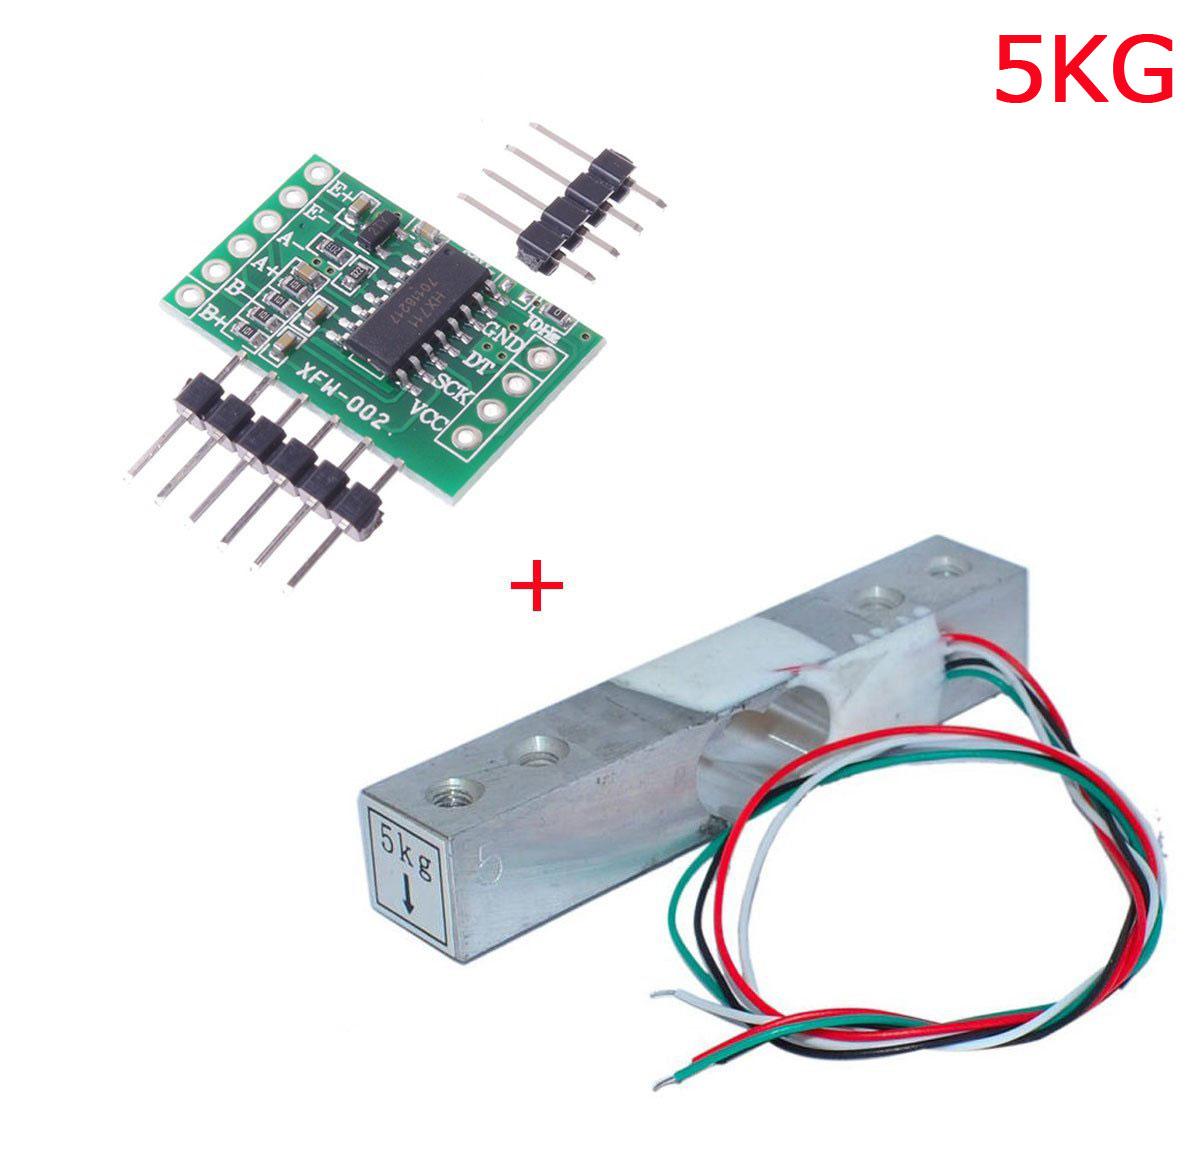 digital-load-cell-weight-sensor-5kg-portable-electronic-kitchen-scale-hx711-weighing-sensors-ad-module-for-font-b-arduino-b-font